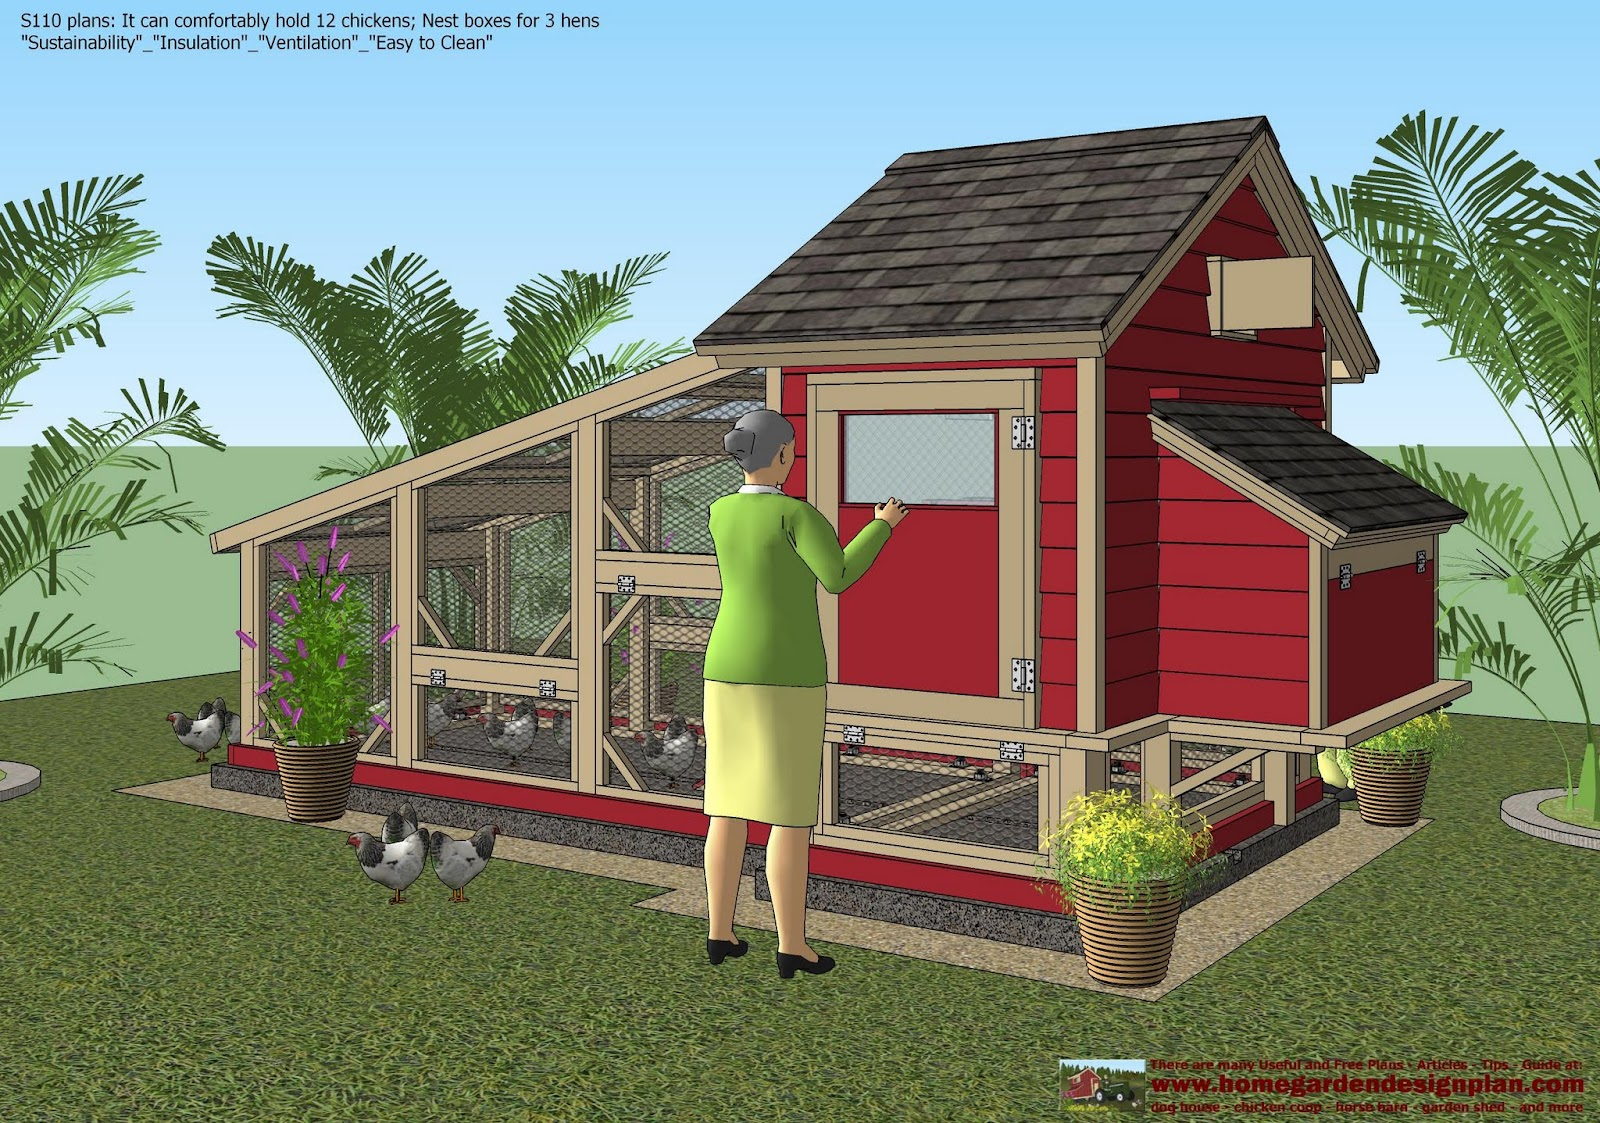 A Frame Coop Plans: Chicken Coop Plans Construction